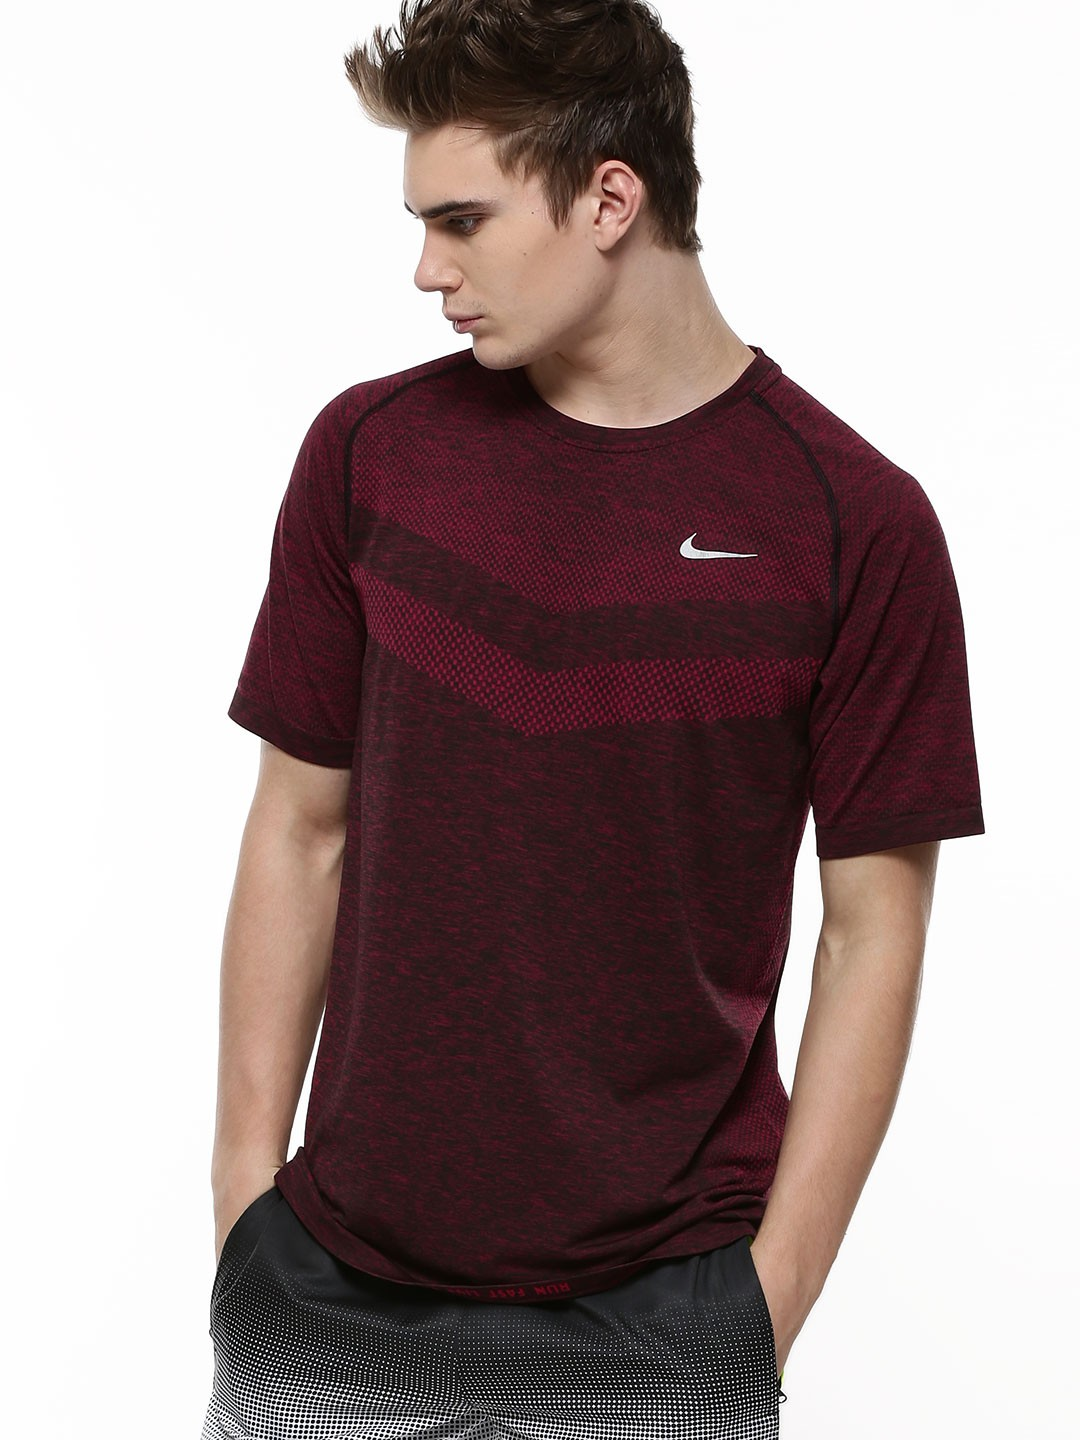 Buy nike dri fit knit t shirt for men men 39 s red t shirts for Buy dri fit shirts